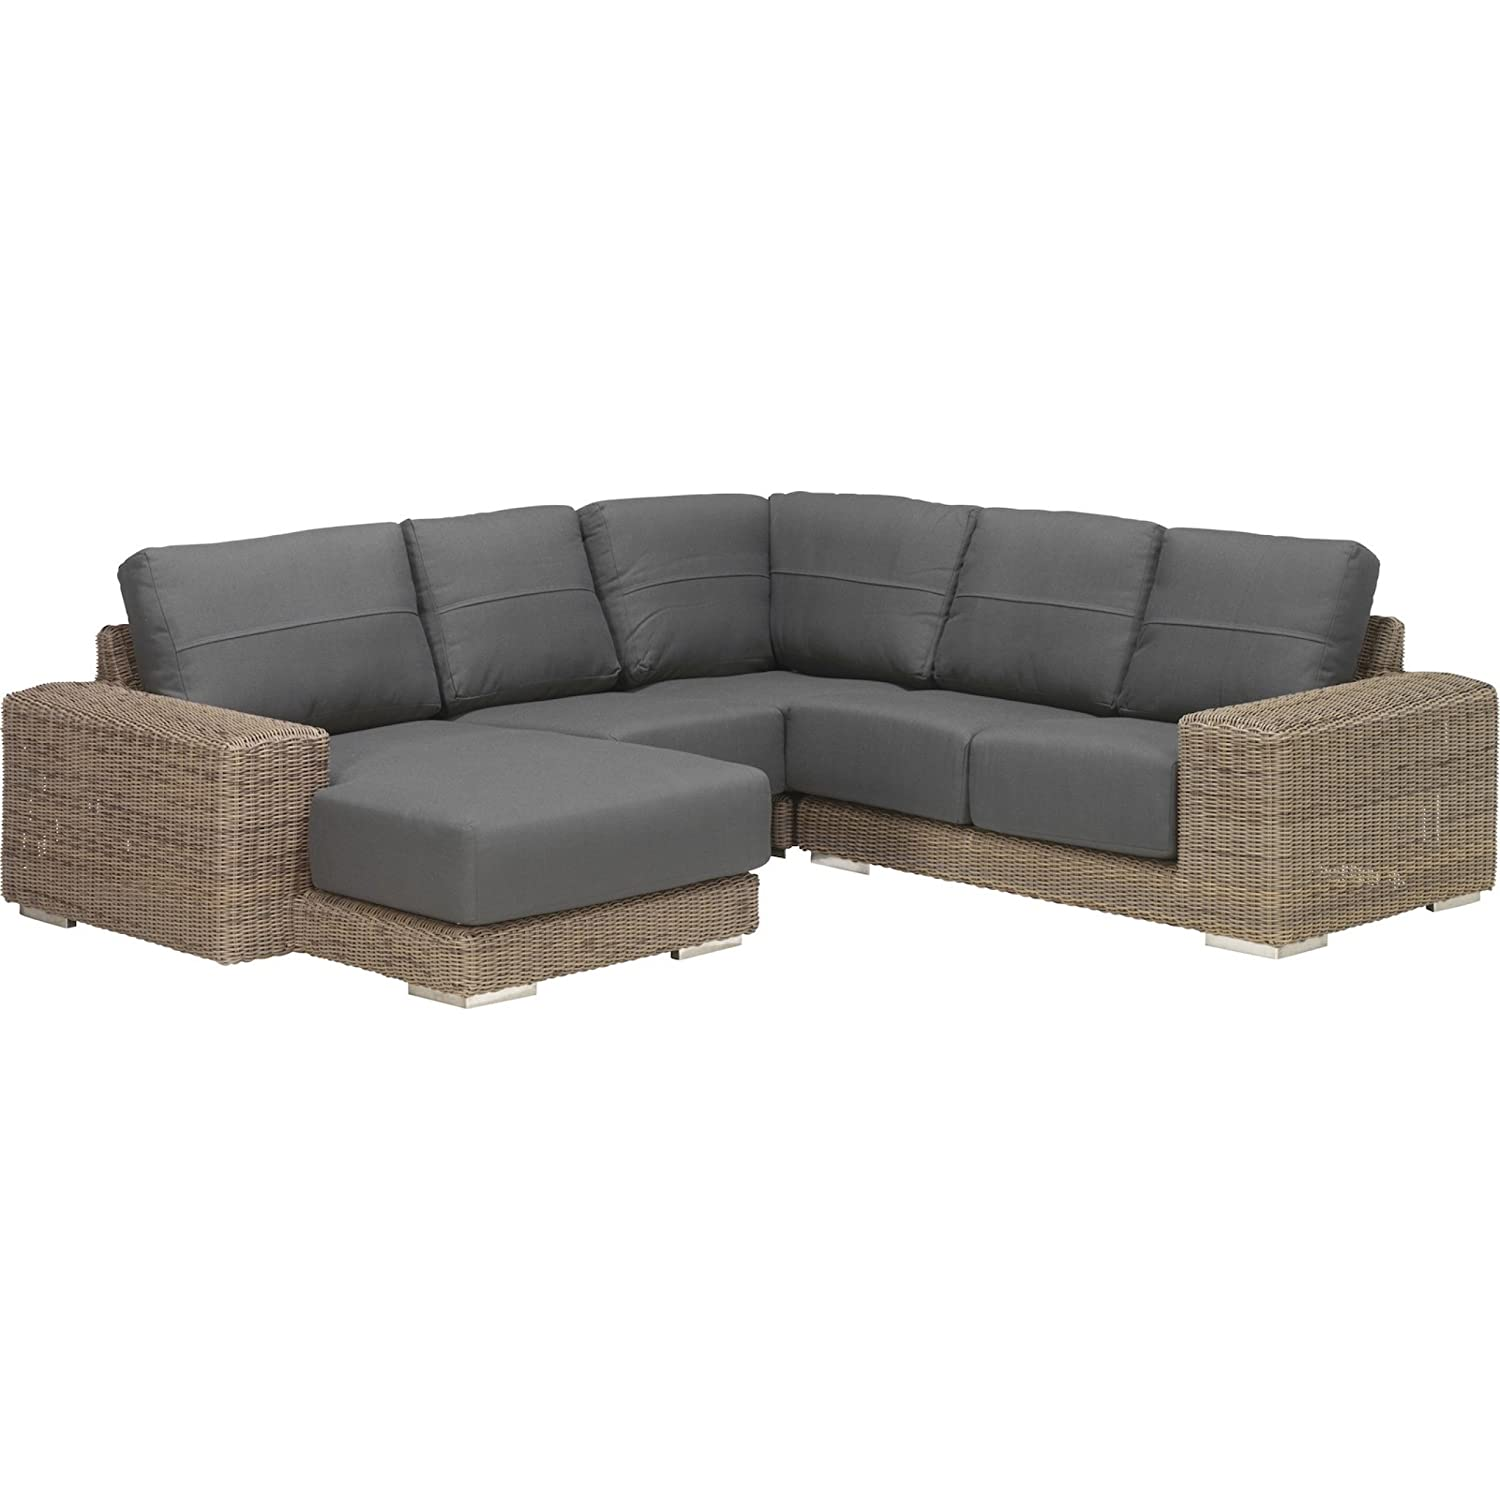 4Seasons Outdoor Kingston 4-teilige Eck-Loungegruppe Polyrattan Pure